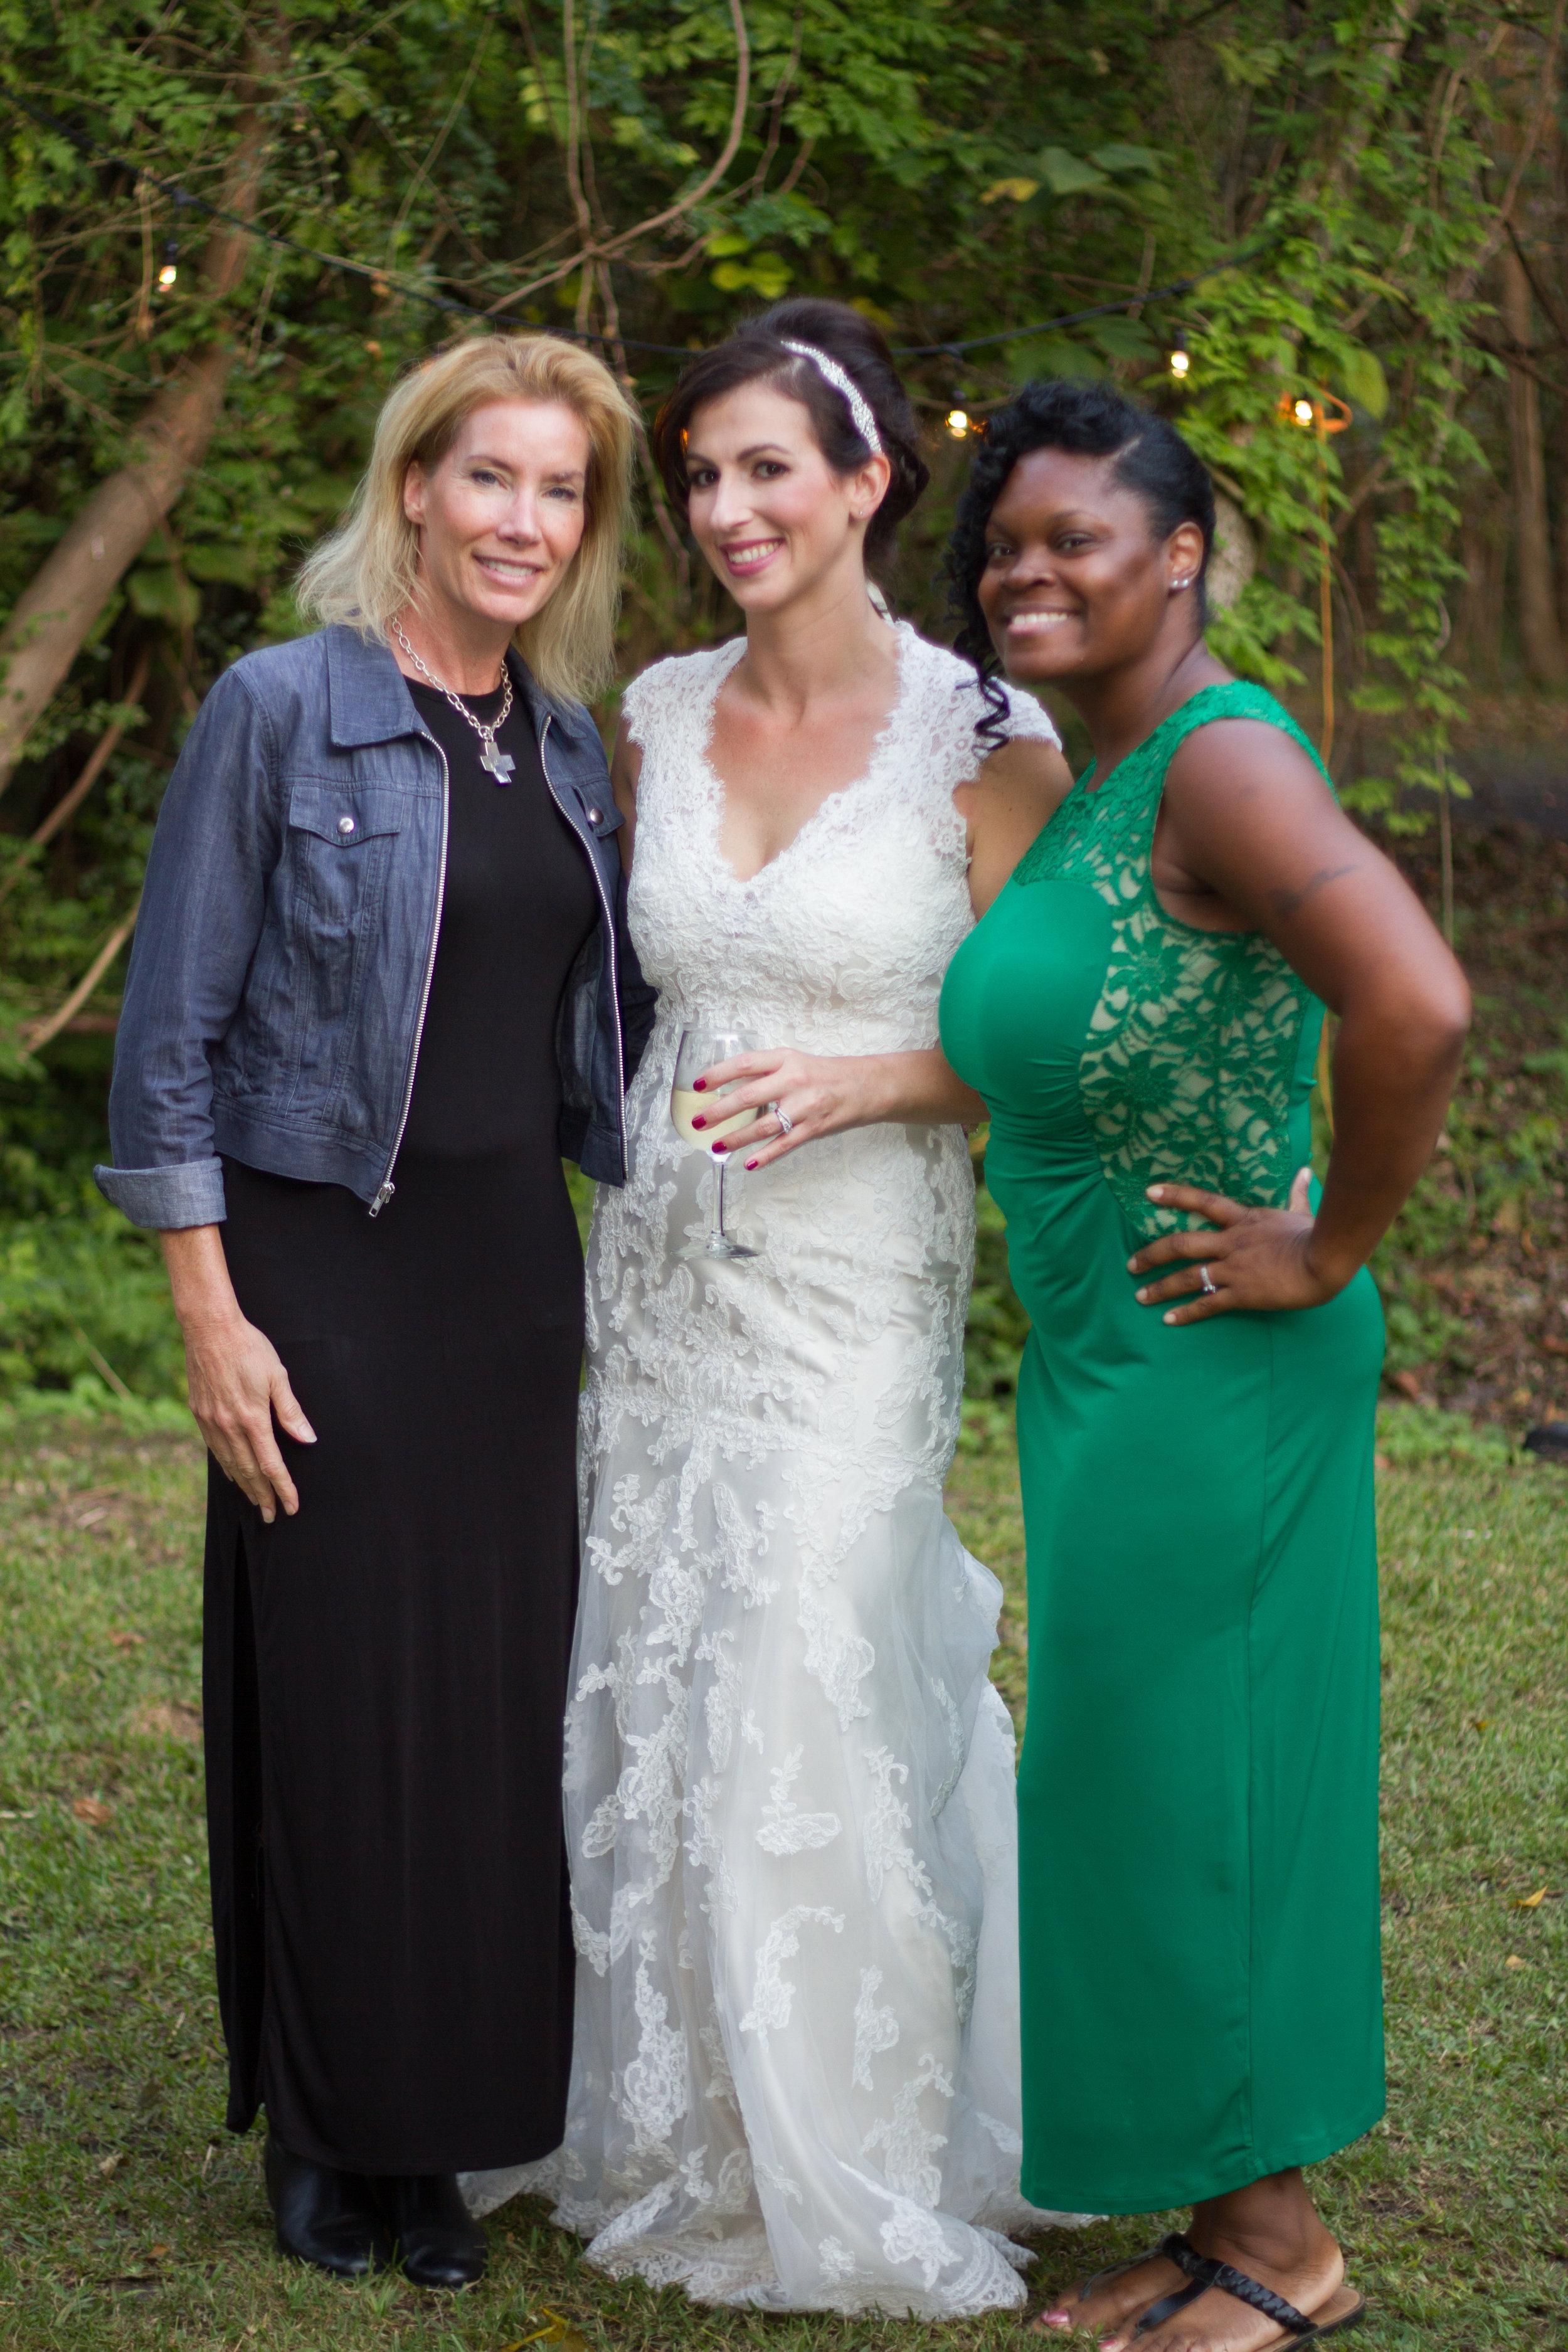 Jacqueline and Shawn Wedding (383 of 597).jpg